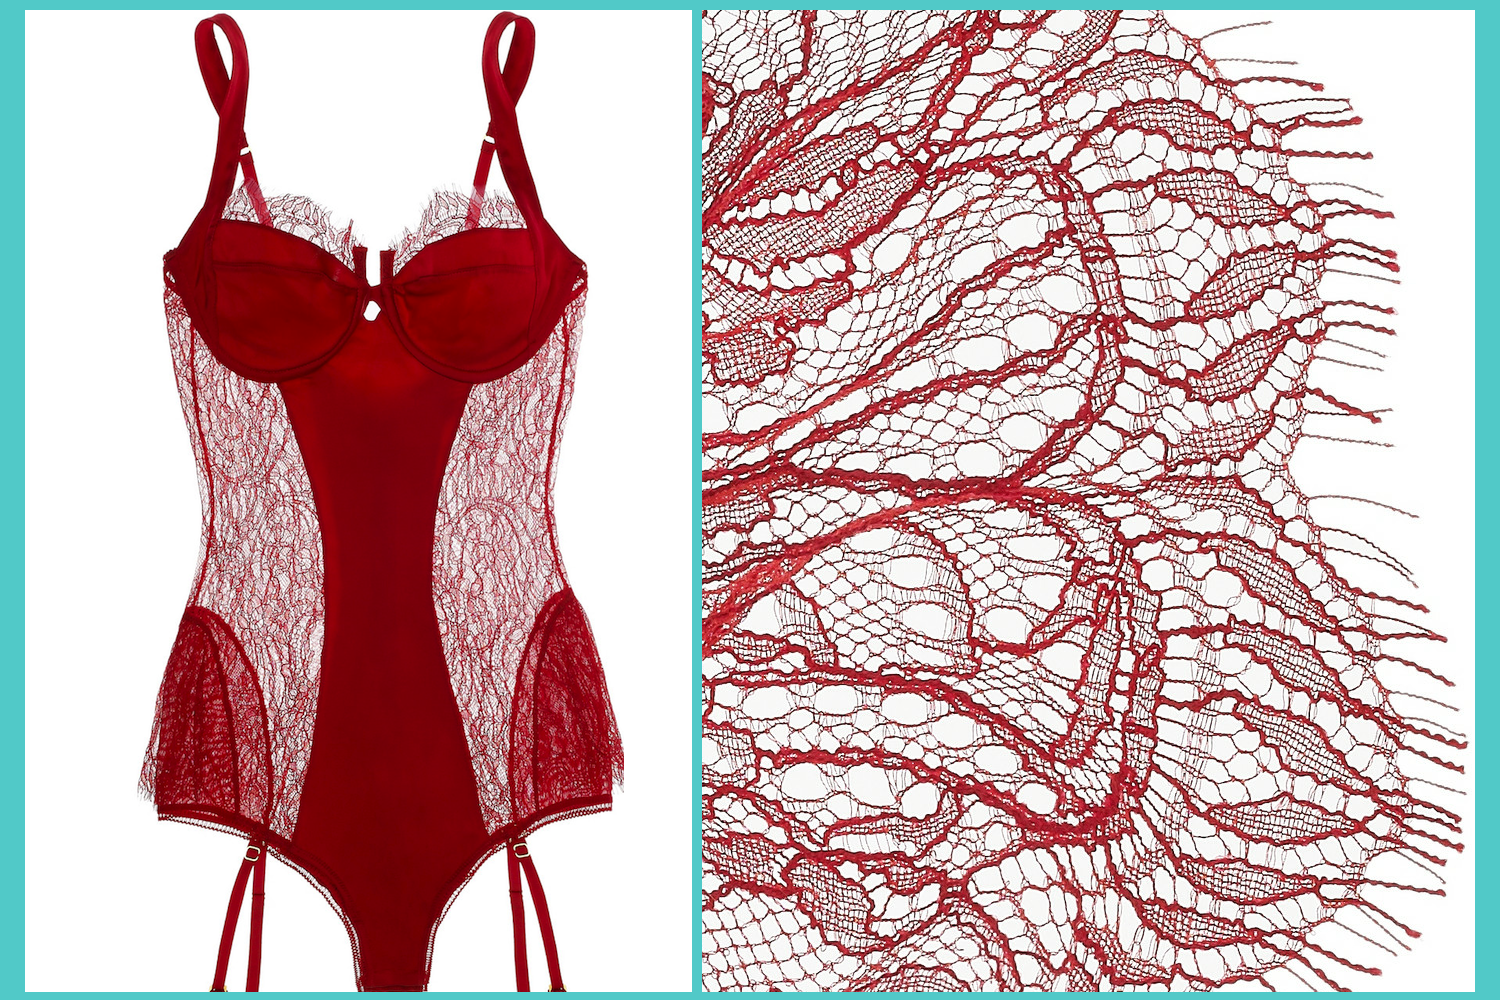 racy-red-lingerie-for-the-wedding-night original png 1379179961Racy Wedding Photos